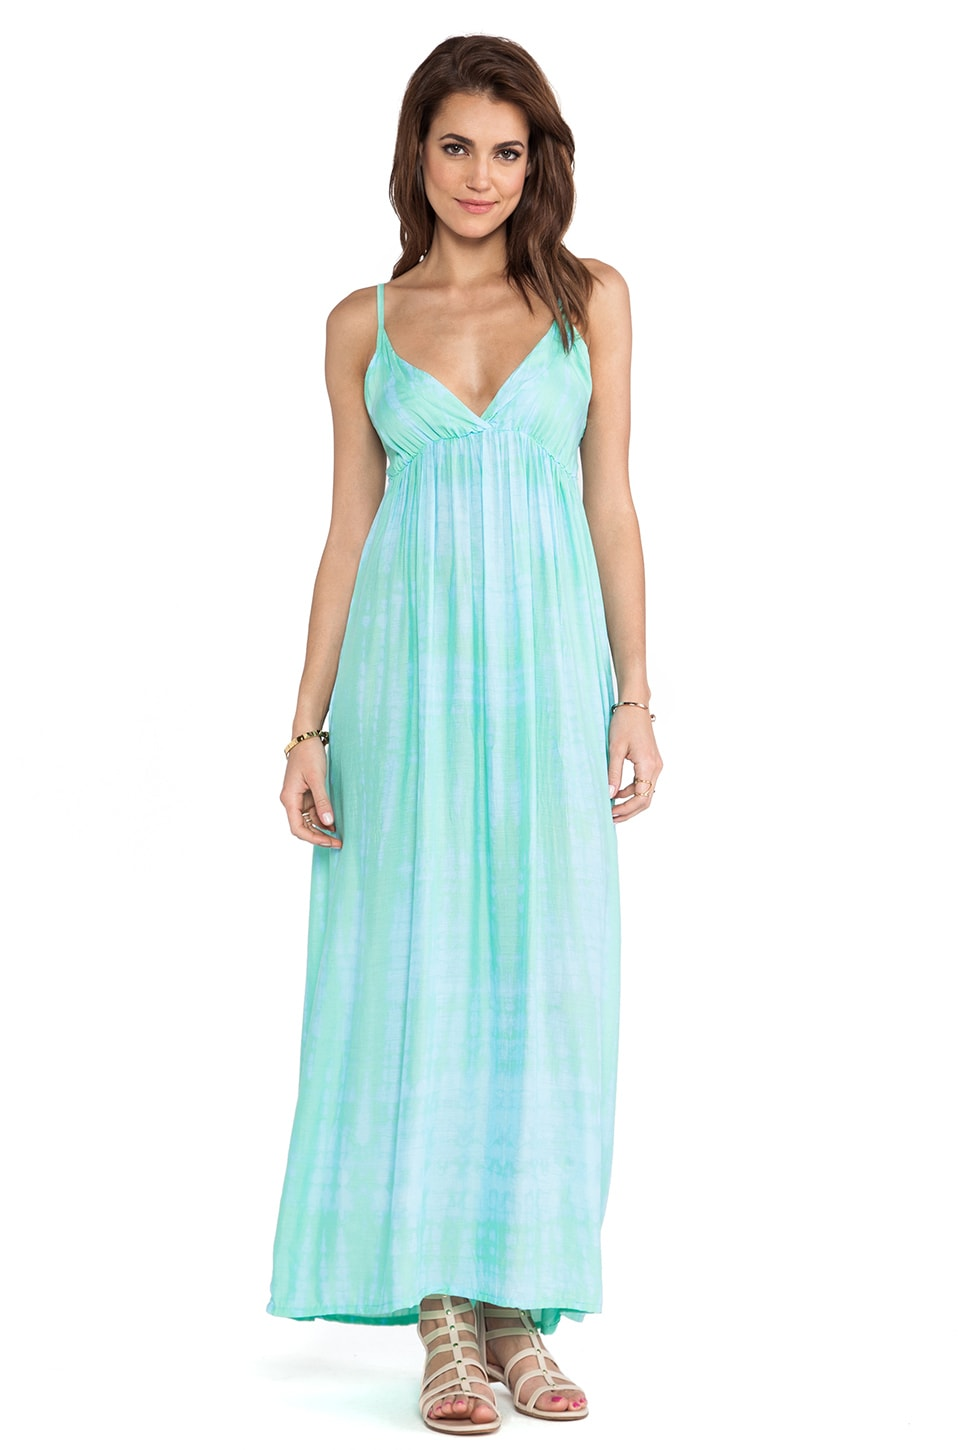 Tiare Hawaii Gracie Maxi Tie Dye in Teal Tile